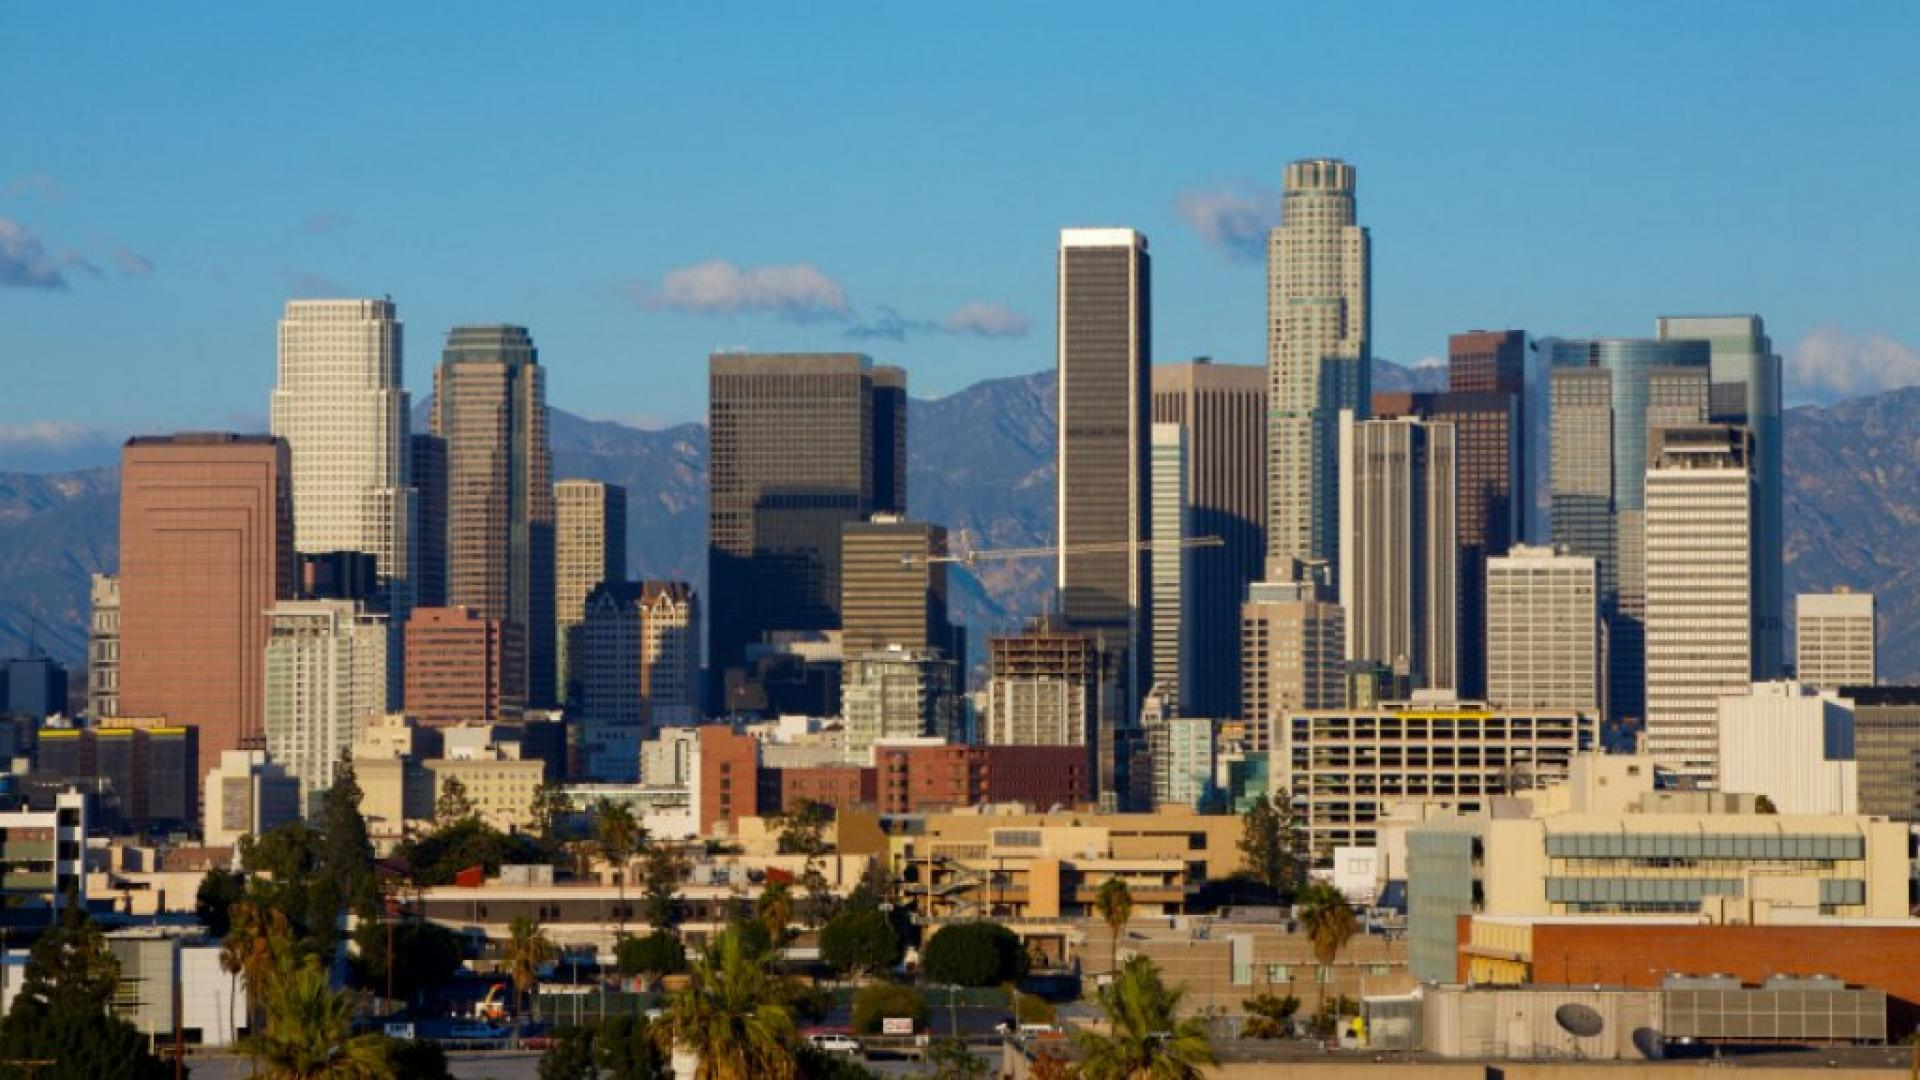 Los angeles wallpapers high quality download free for New york city to los angeles